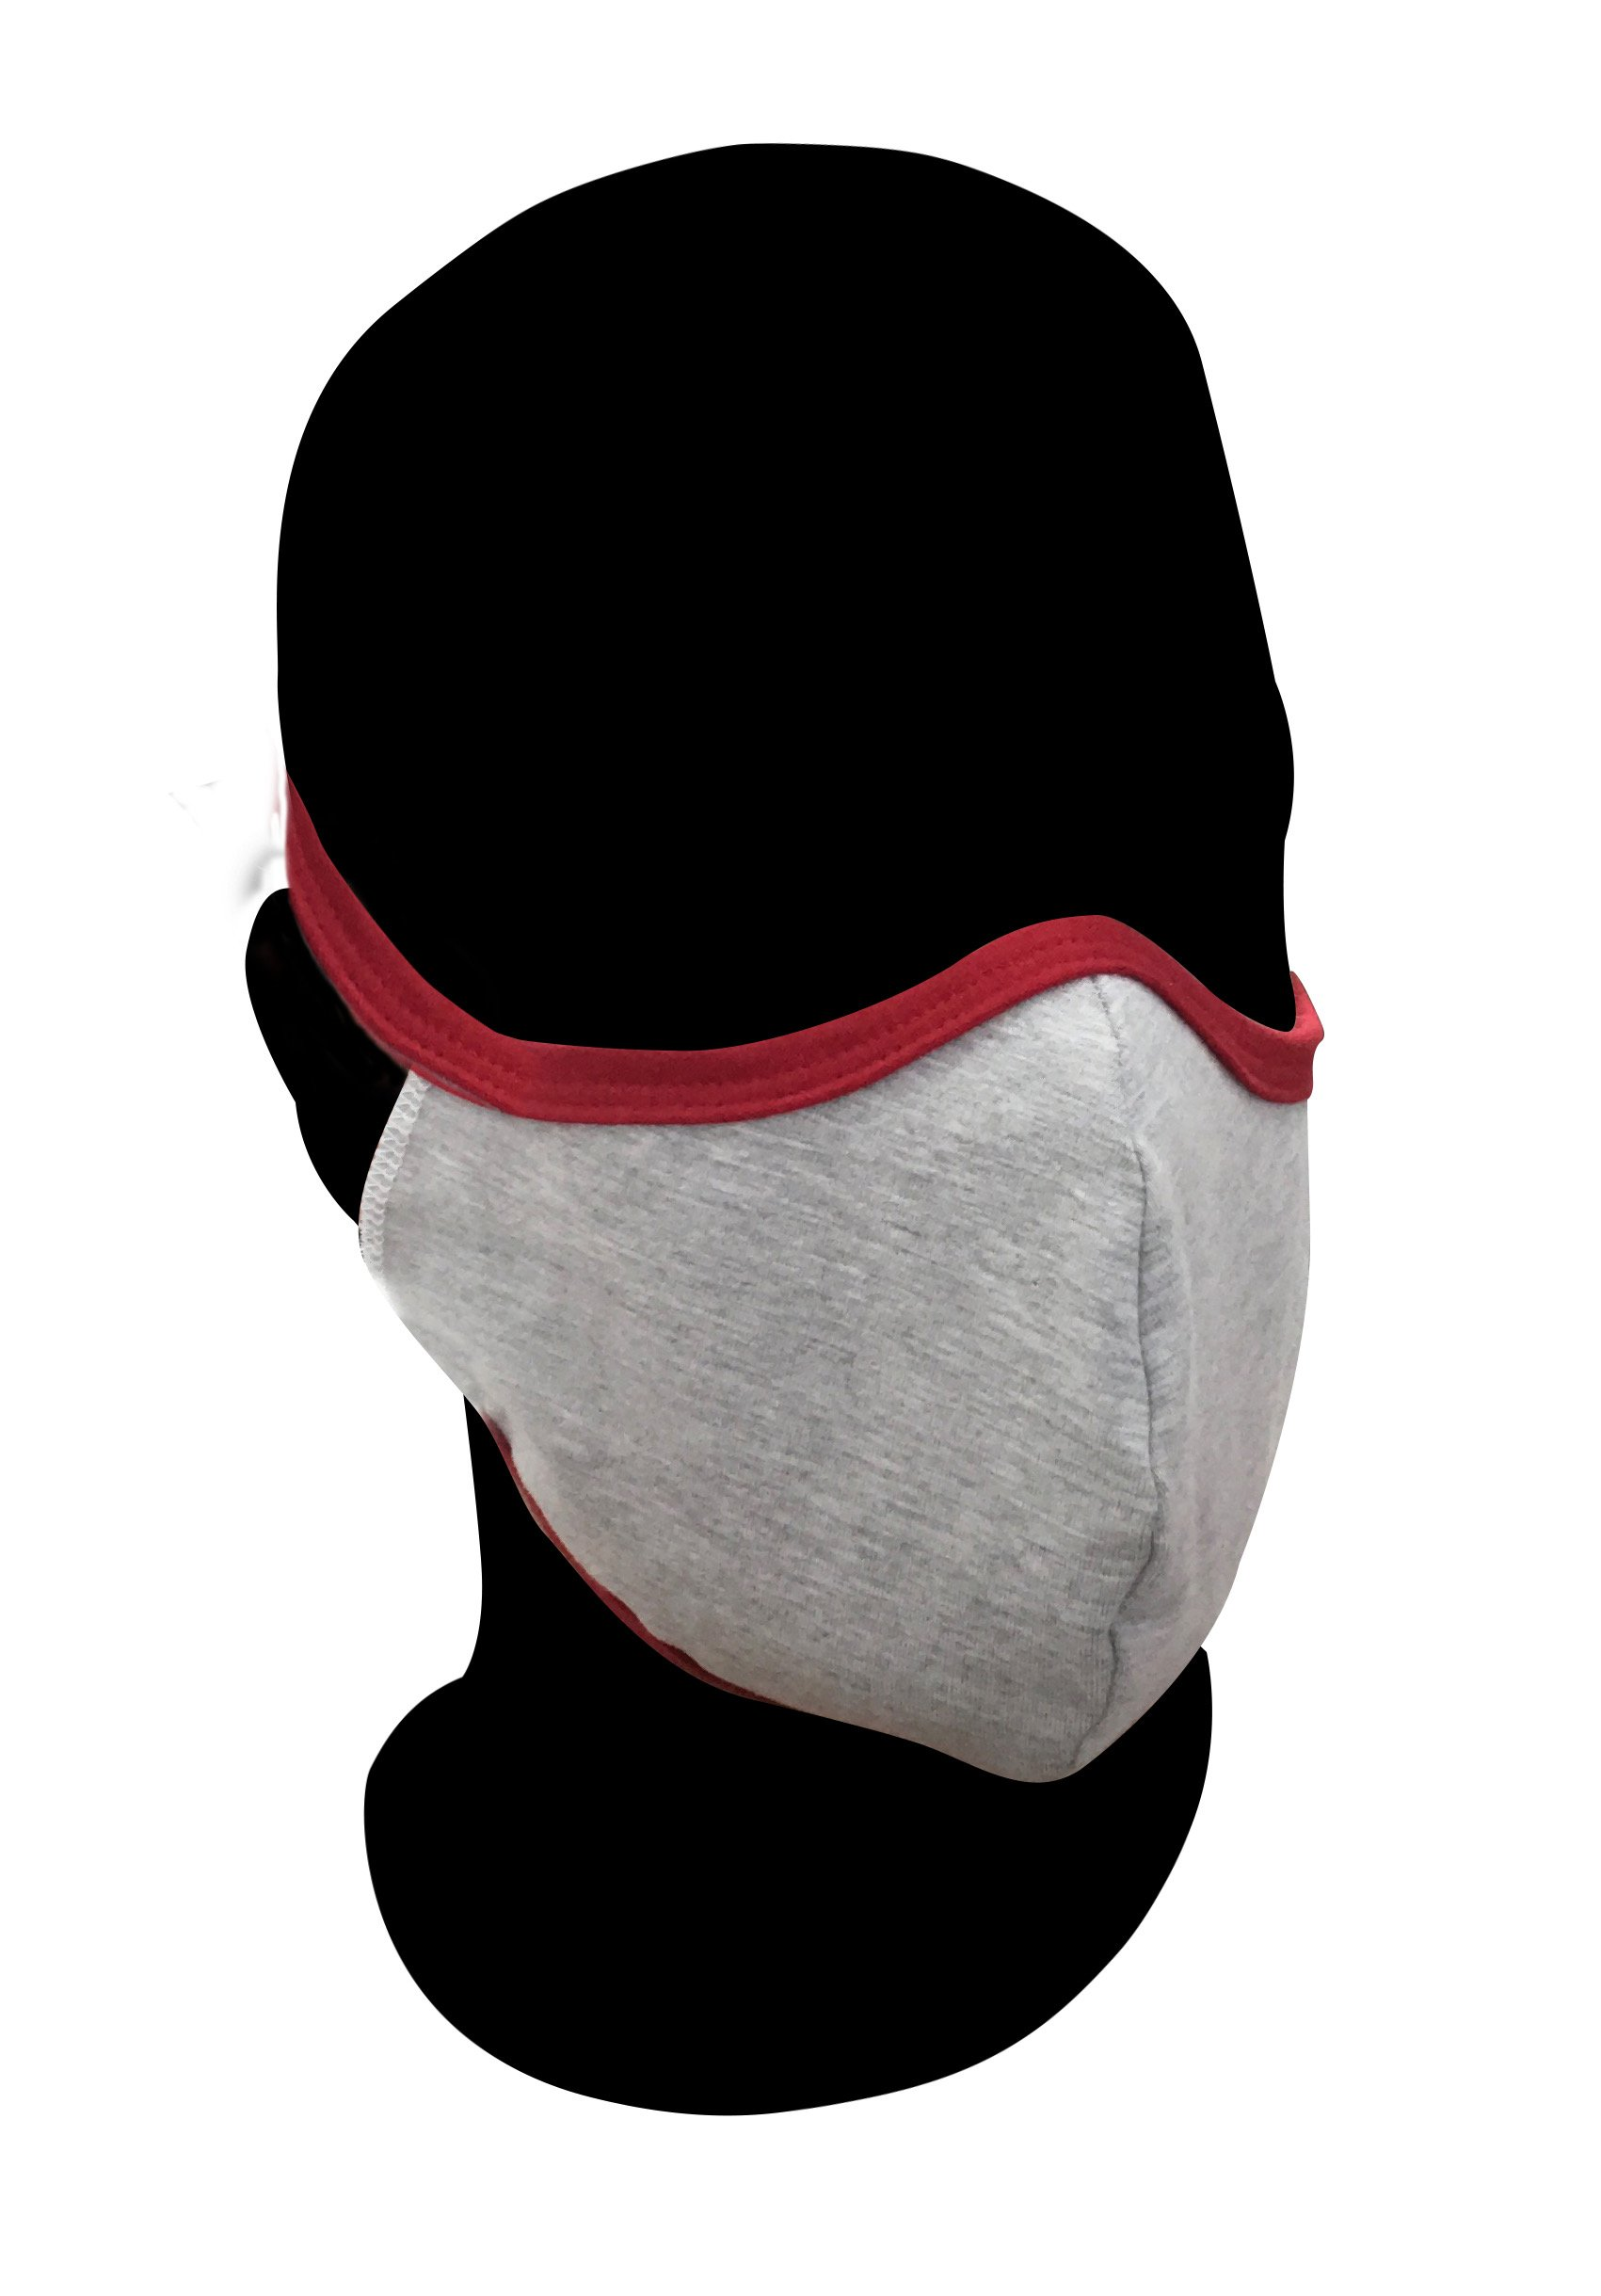 Underwear Companies Make In Masks For COVID-19